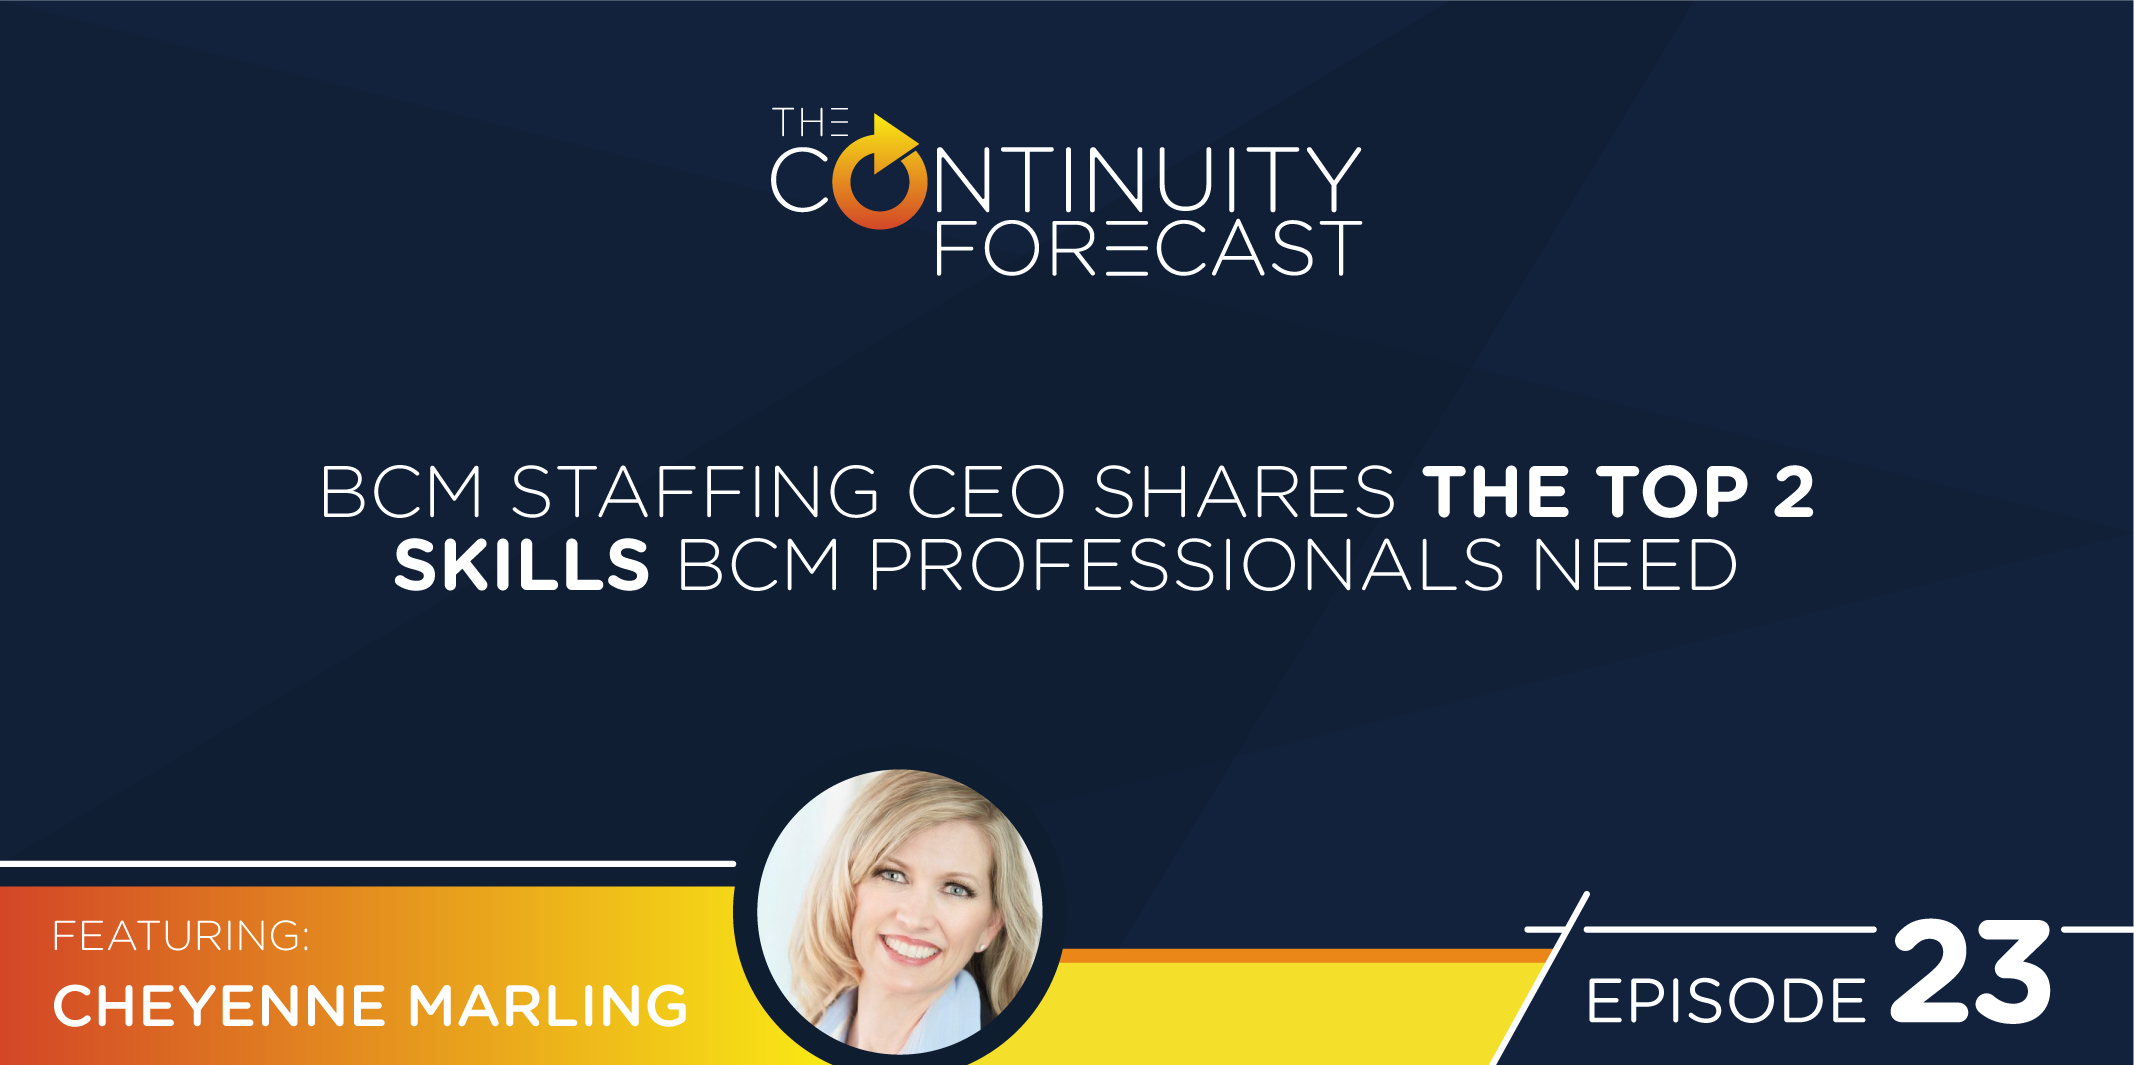 The Continuity Forecast Episode 23 The skills BCM Professionals Need